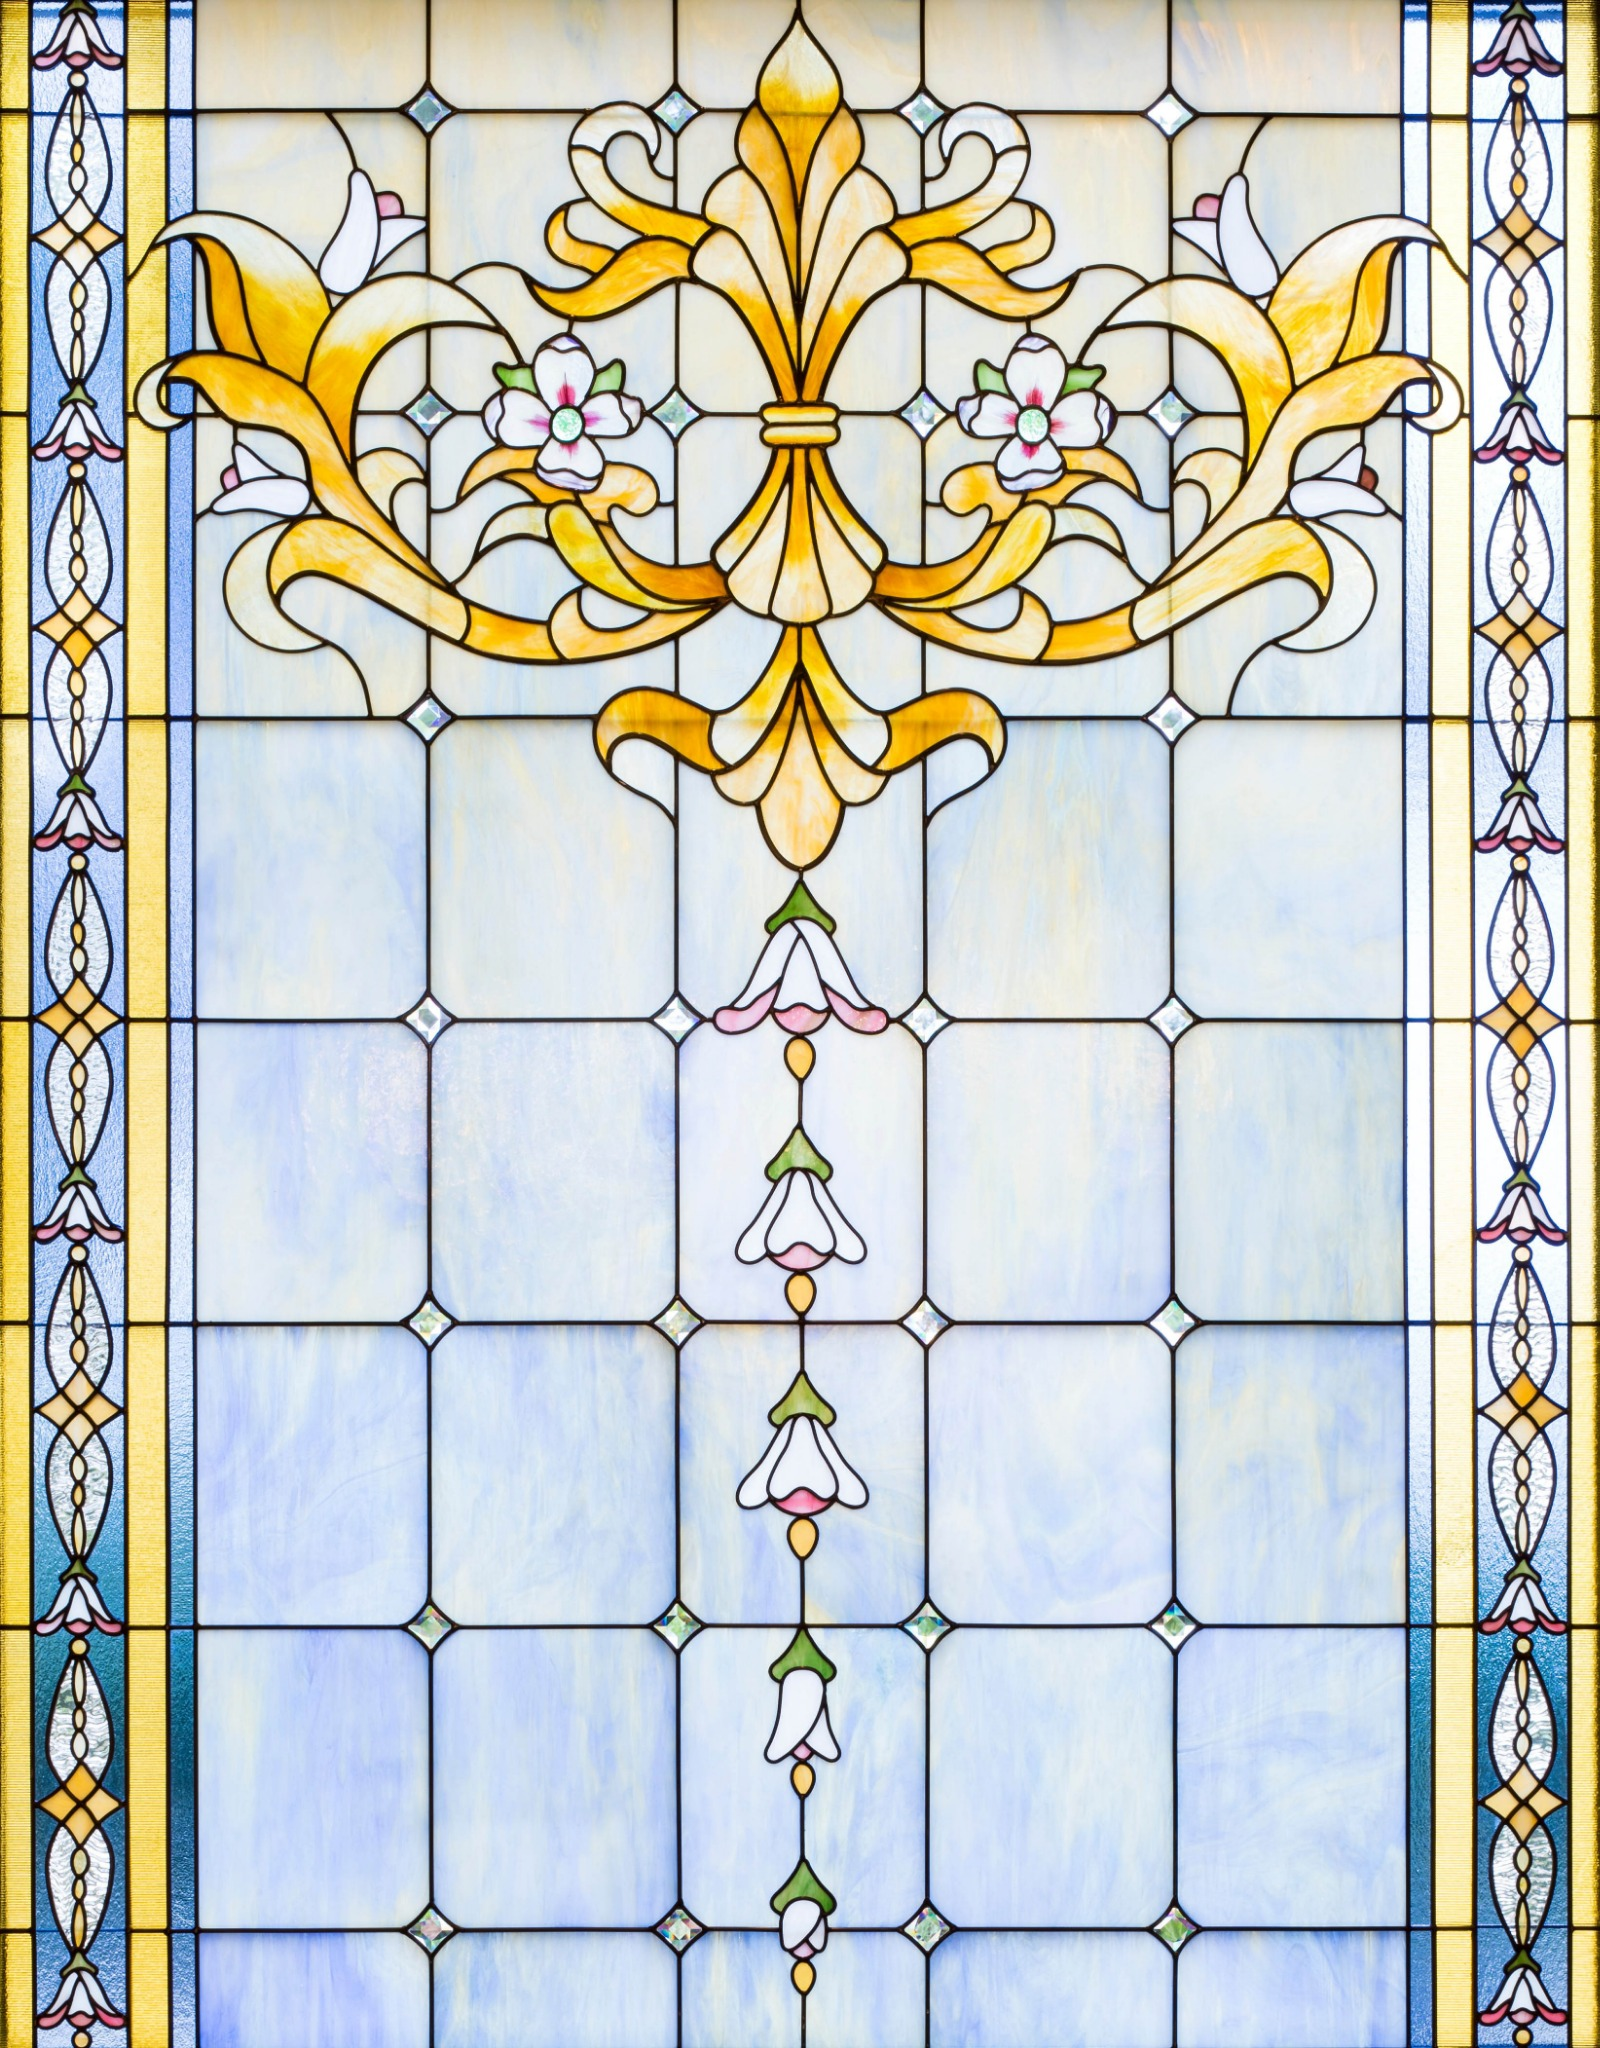 Stained glass windows are placed throughout the Raleigh North Carolina Temple.